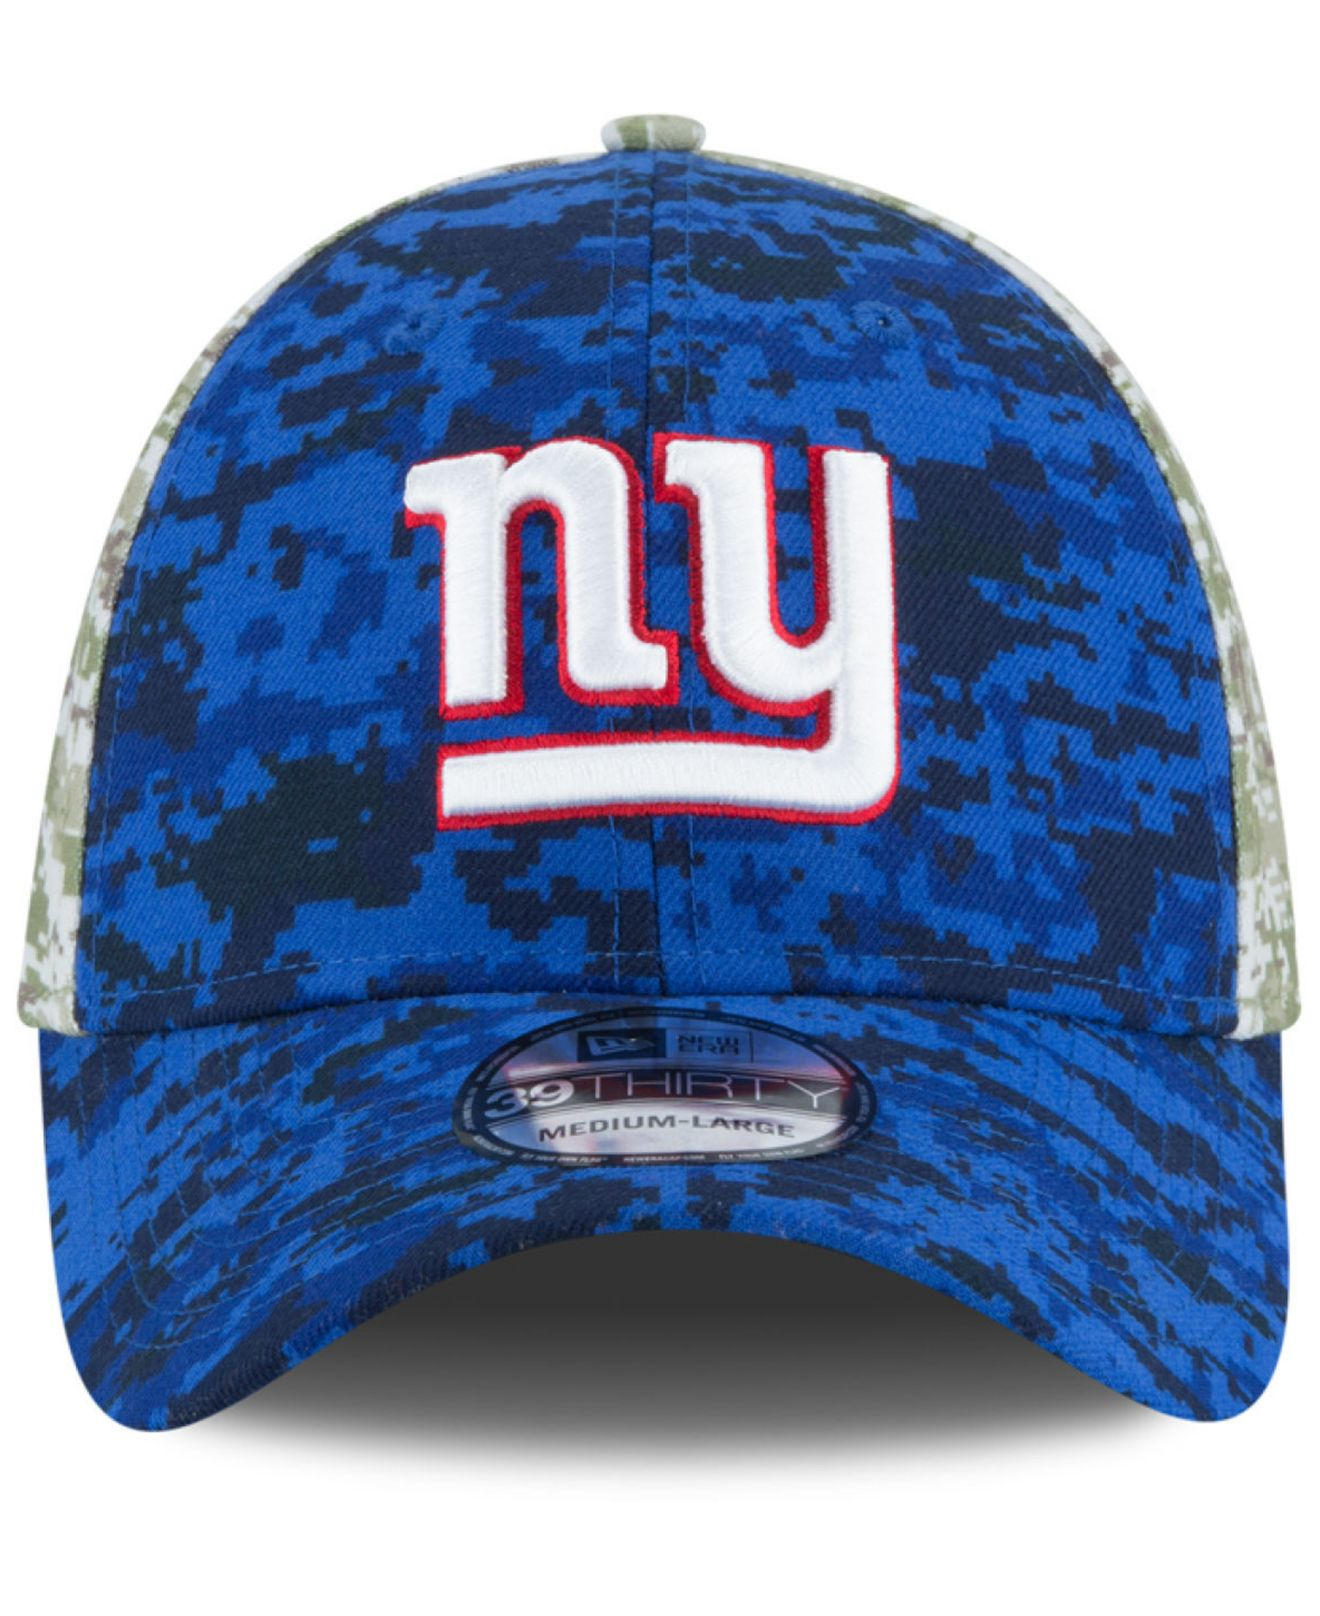 958c887ed76567 KTZ New York Giants Salute To Service 39thirty Cap in Blue for Men ...